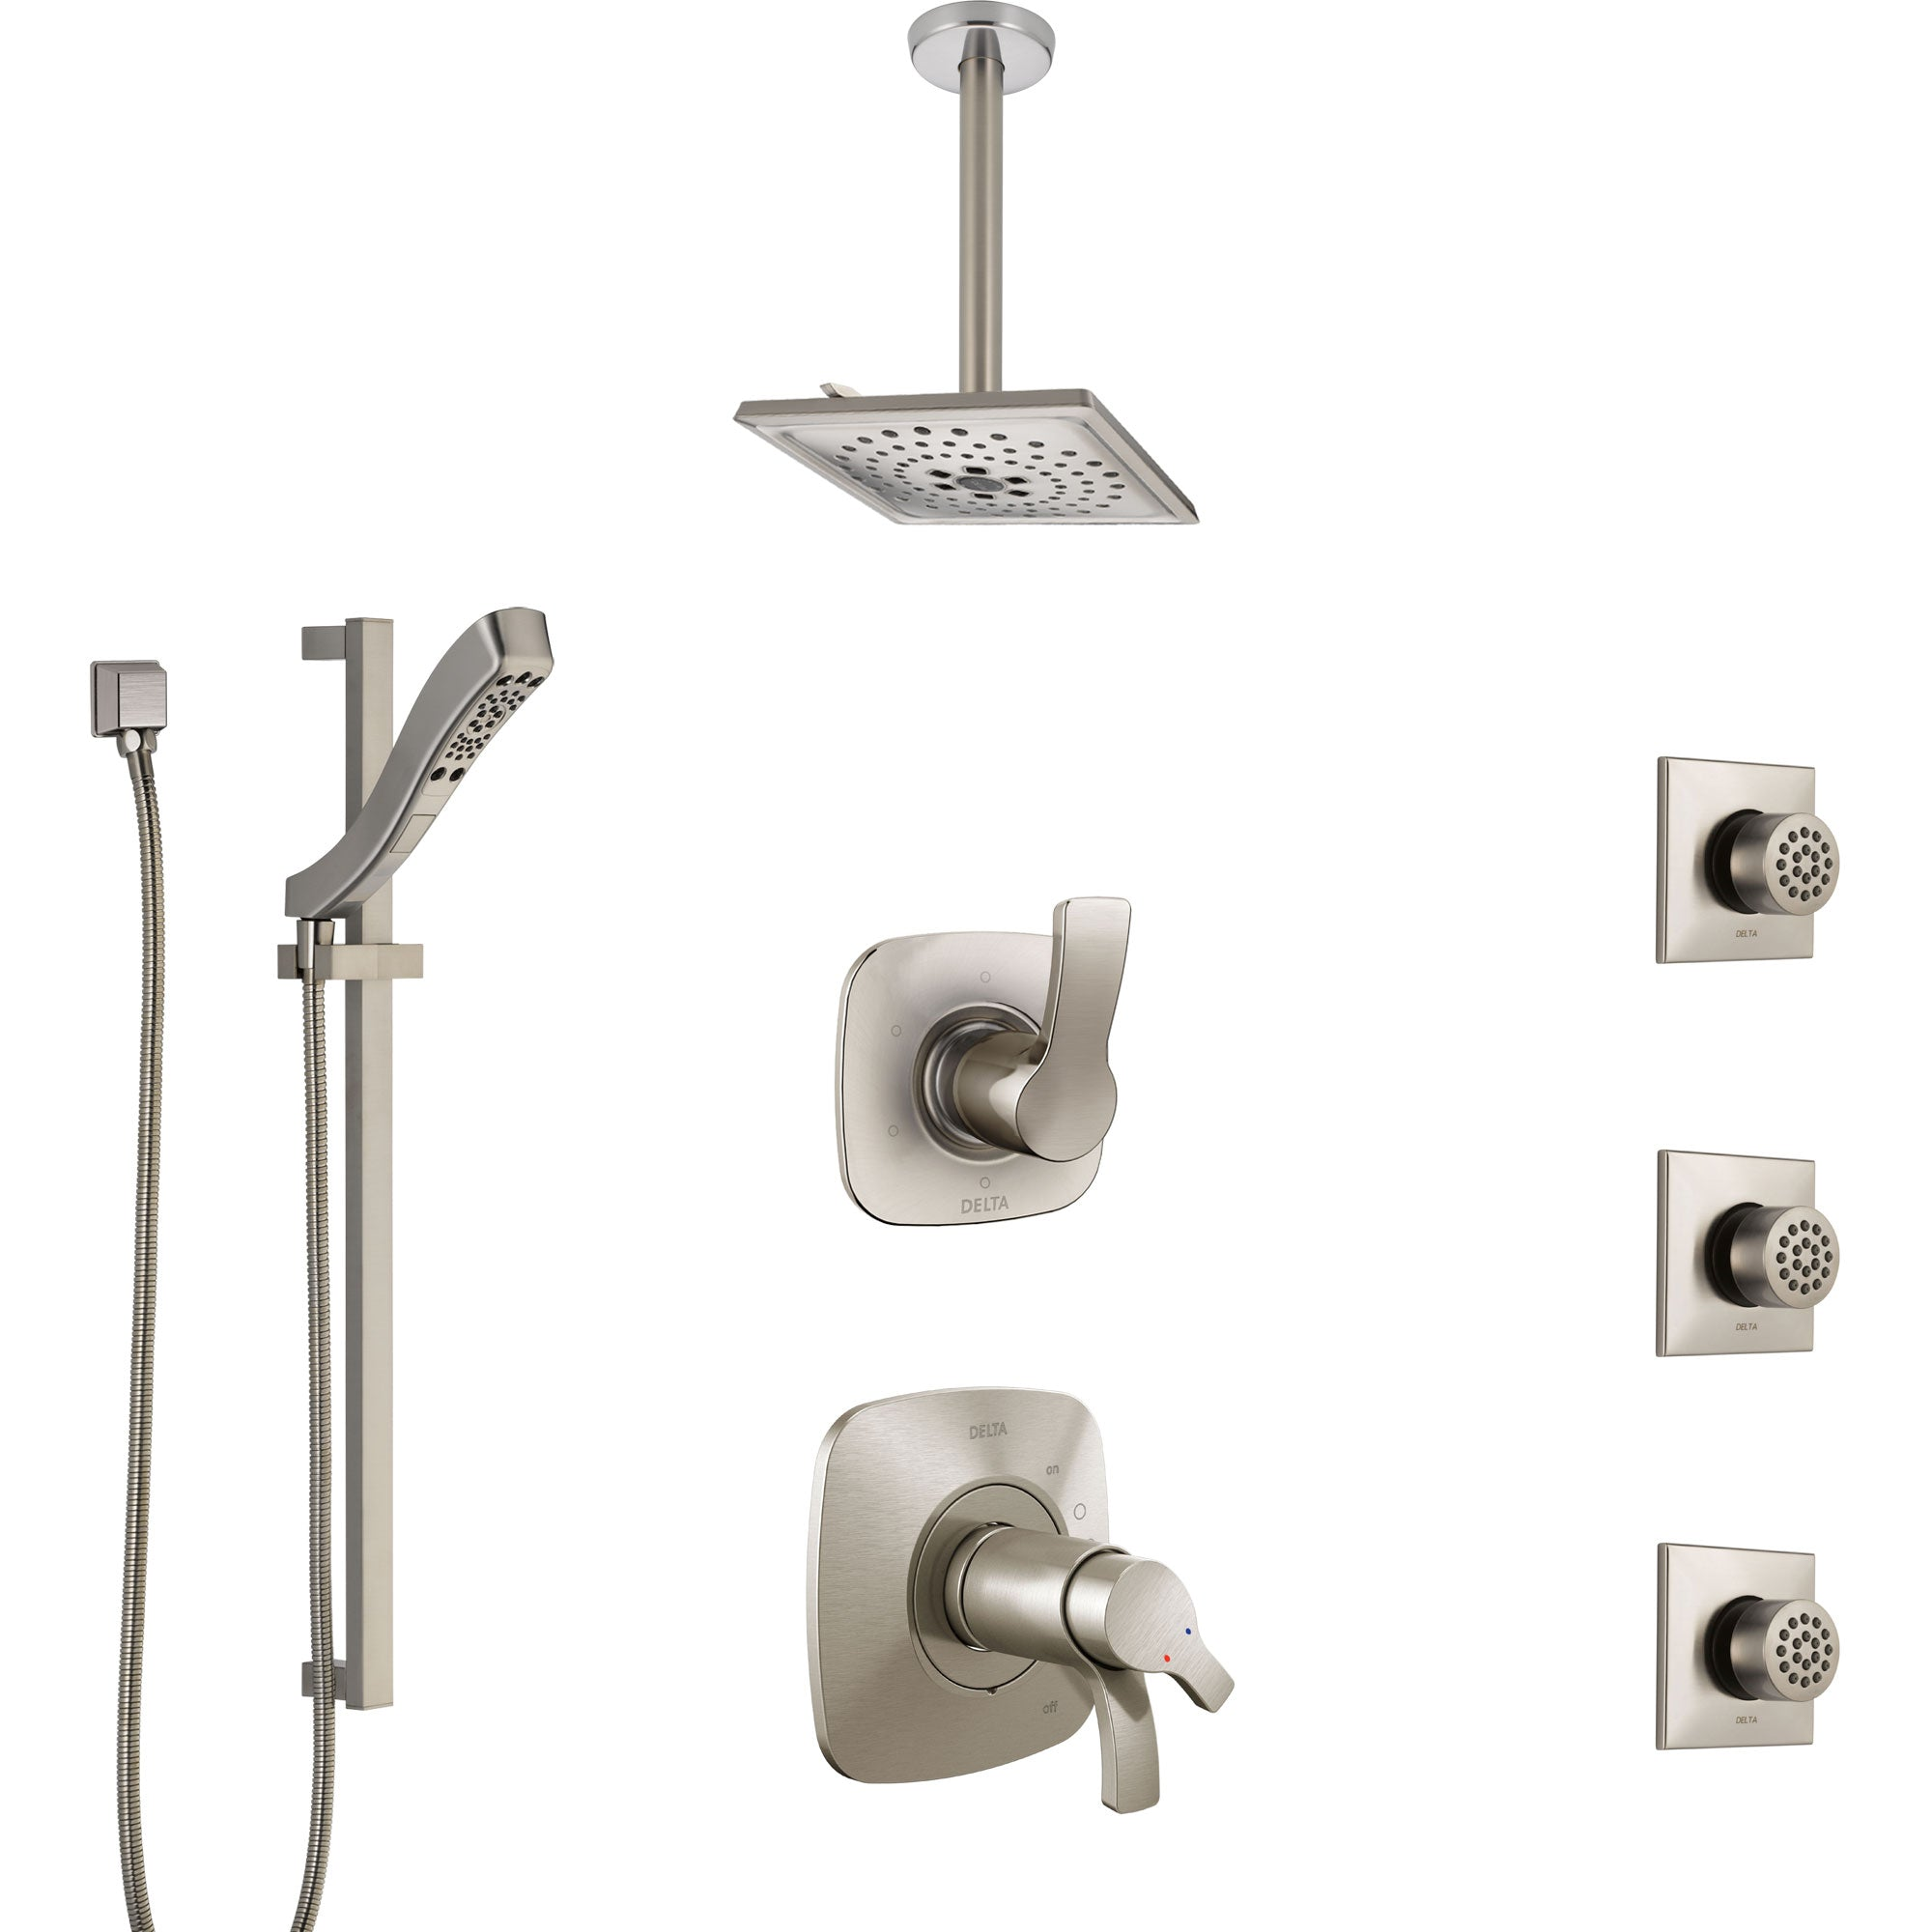 Delta Tesla Dual Thermostatic Control Stainless Steel Finish Shower System, Diverter, Ceiling Showerhead, 3 Body Sprays, and Hand Shower SS17T521SS7